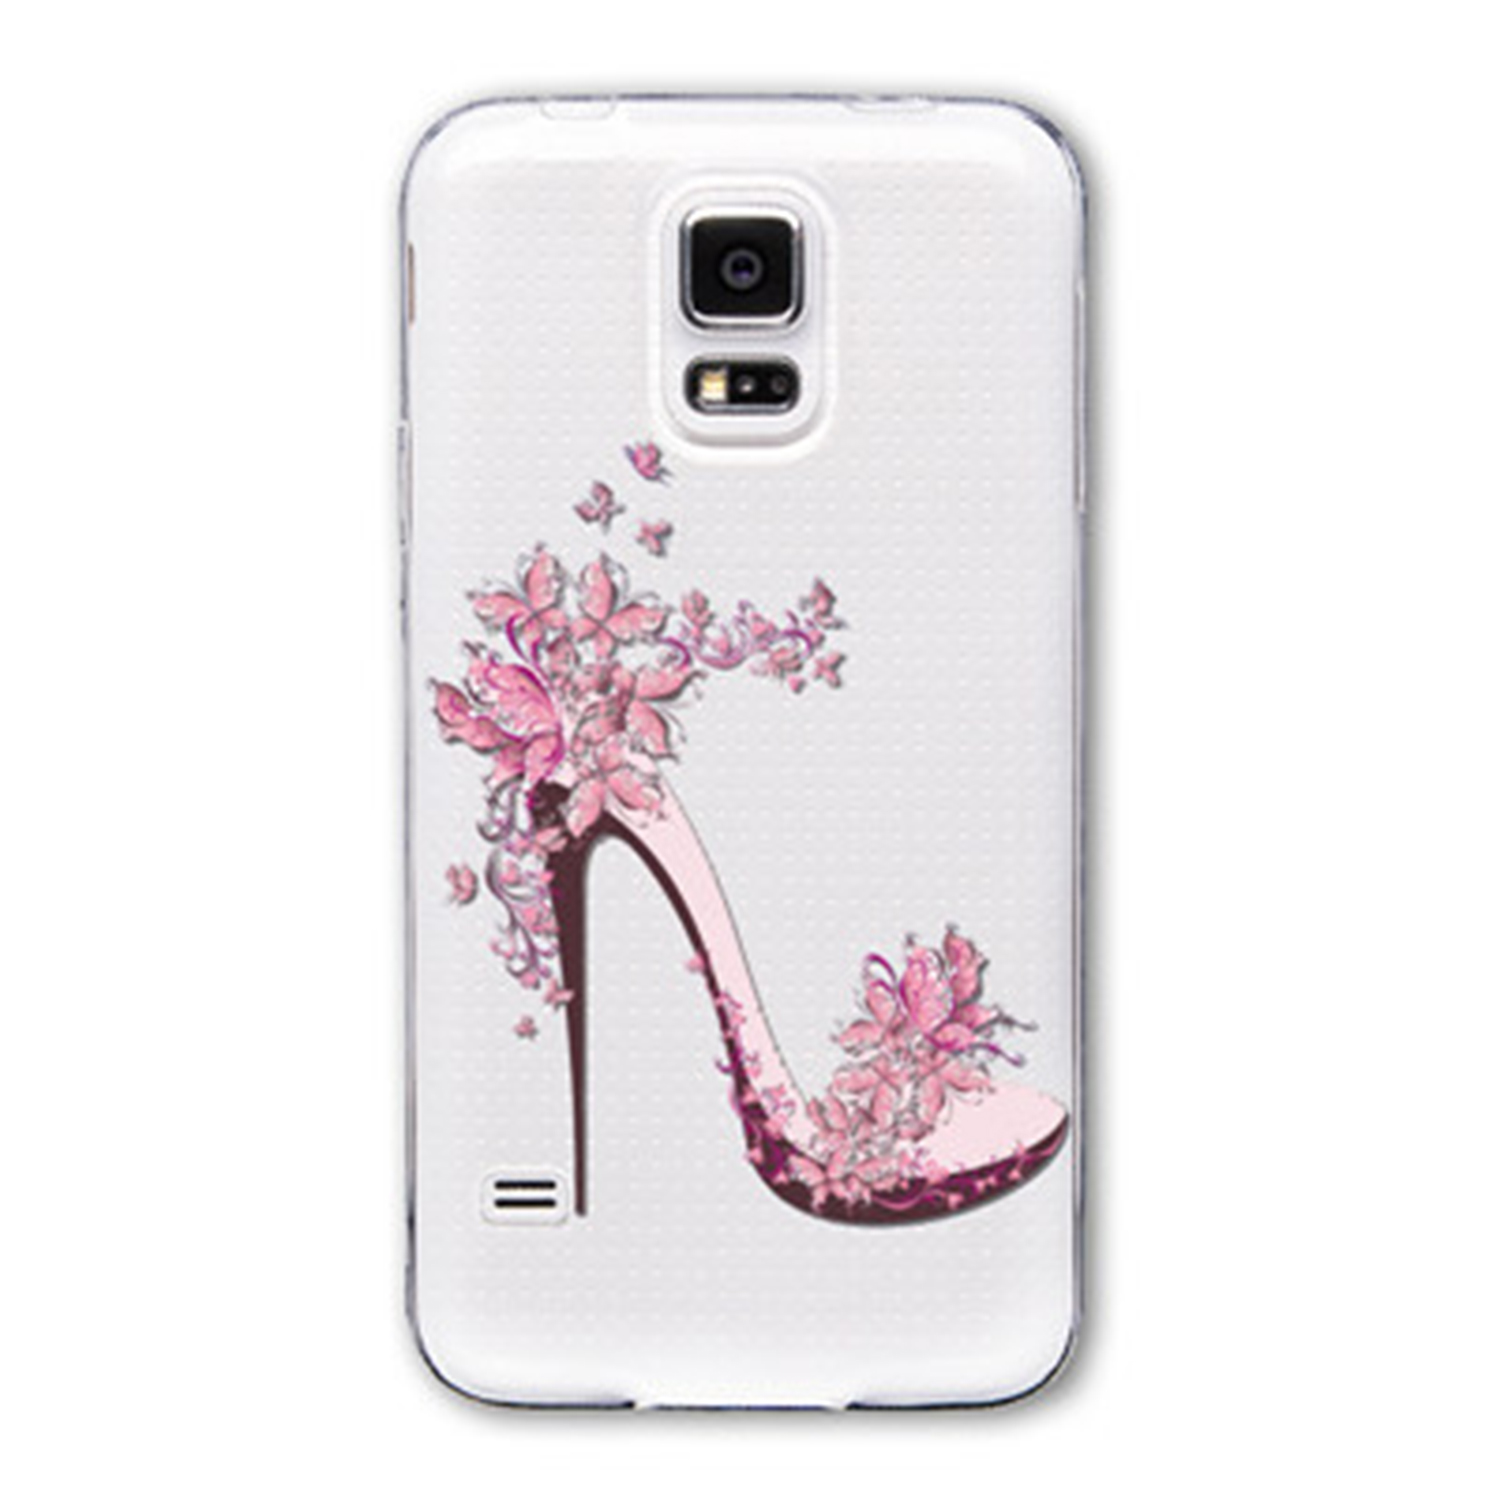 Kritzel Case Collection Galaxy S5 - Mod. #486